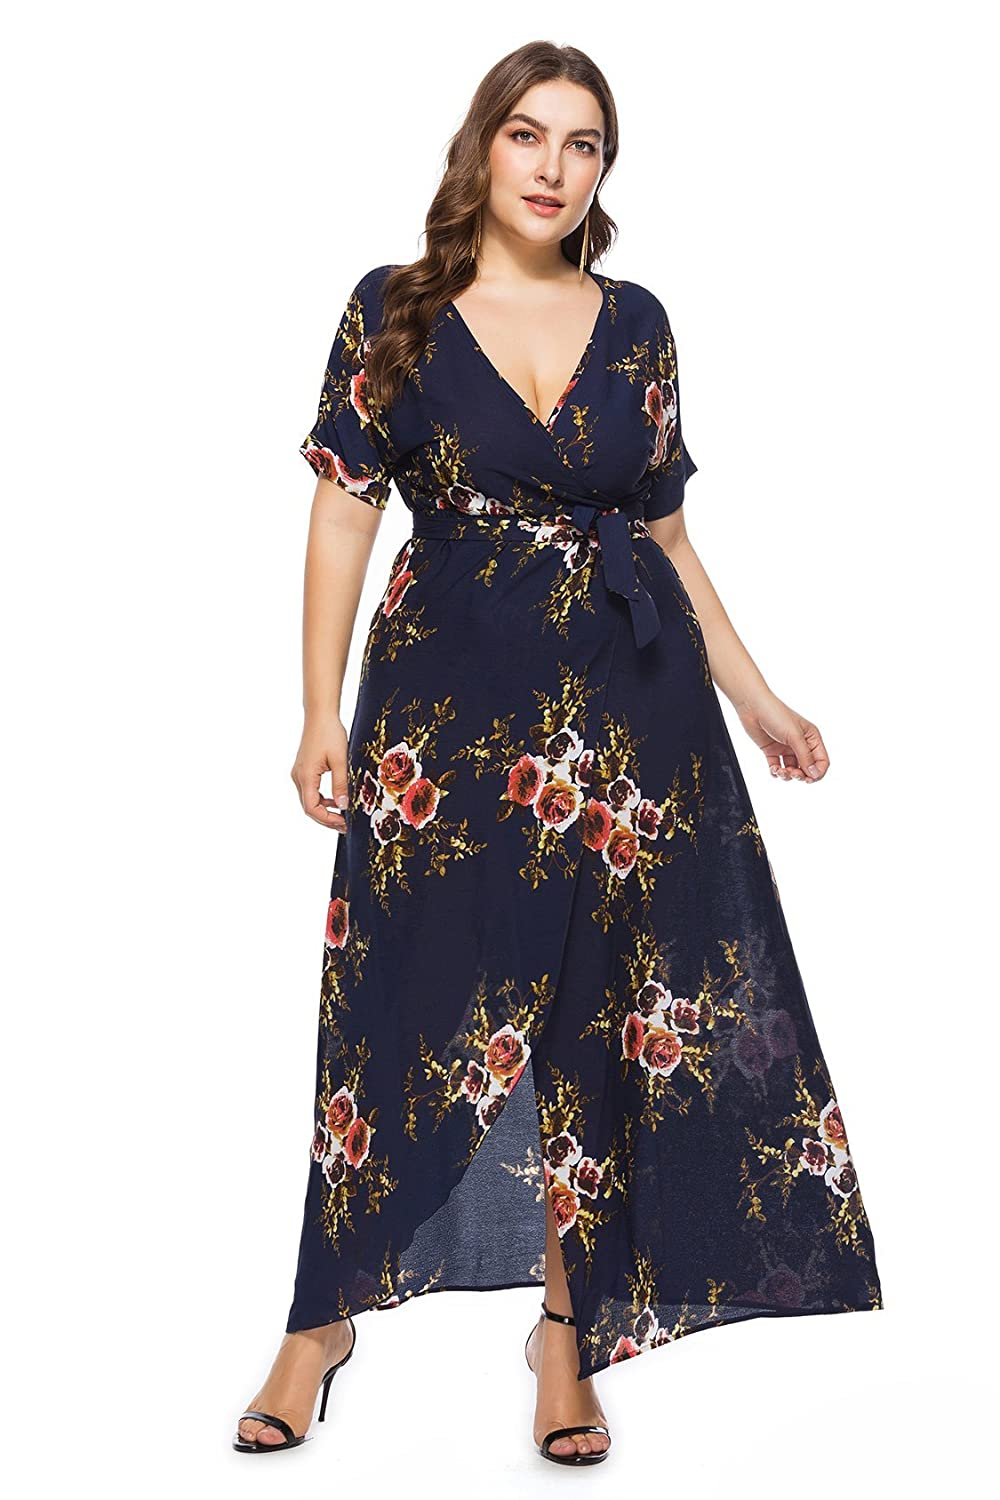 796b86b9527d8 Women s Plus Size Split Floral Print Flowy Party Maxi Dress at Amazon  Women s Clothing store